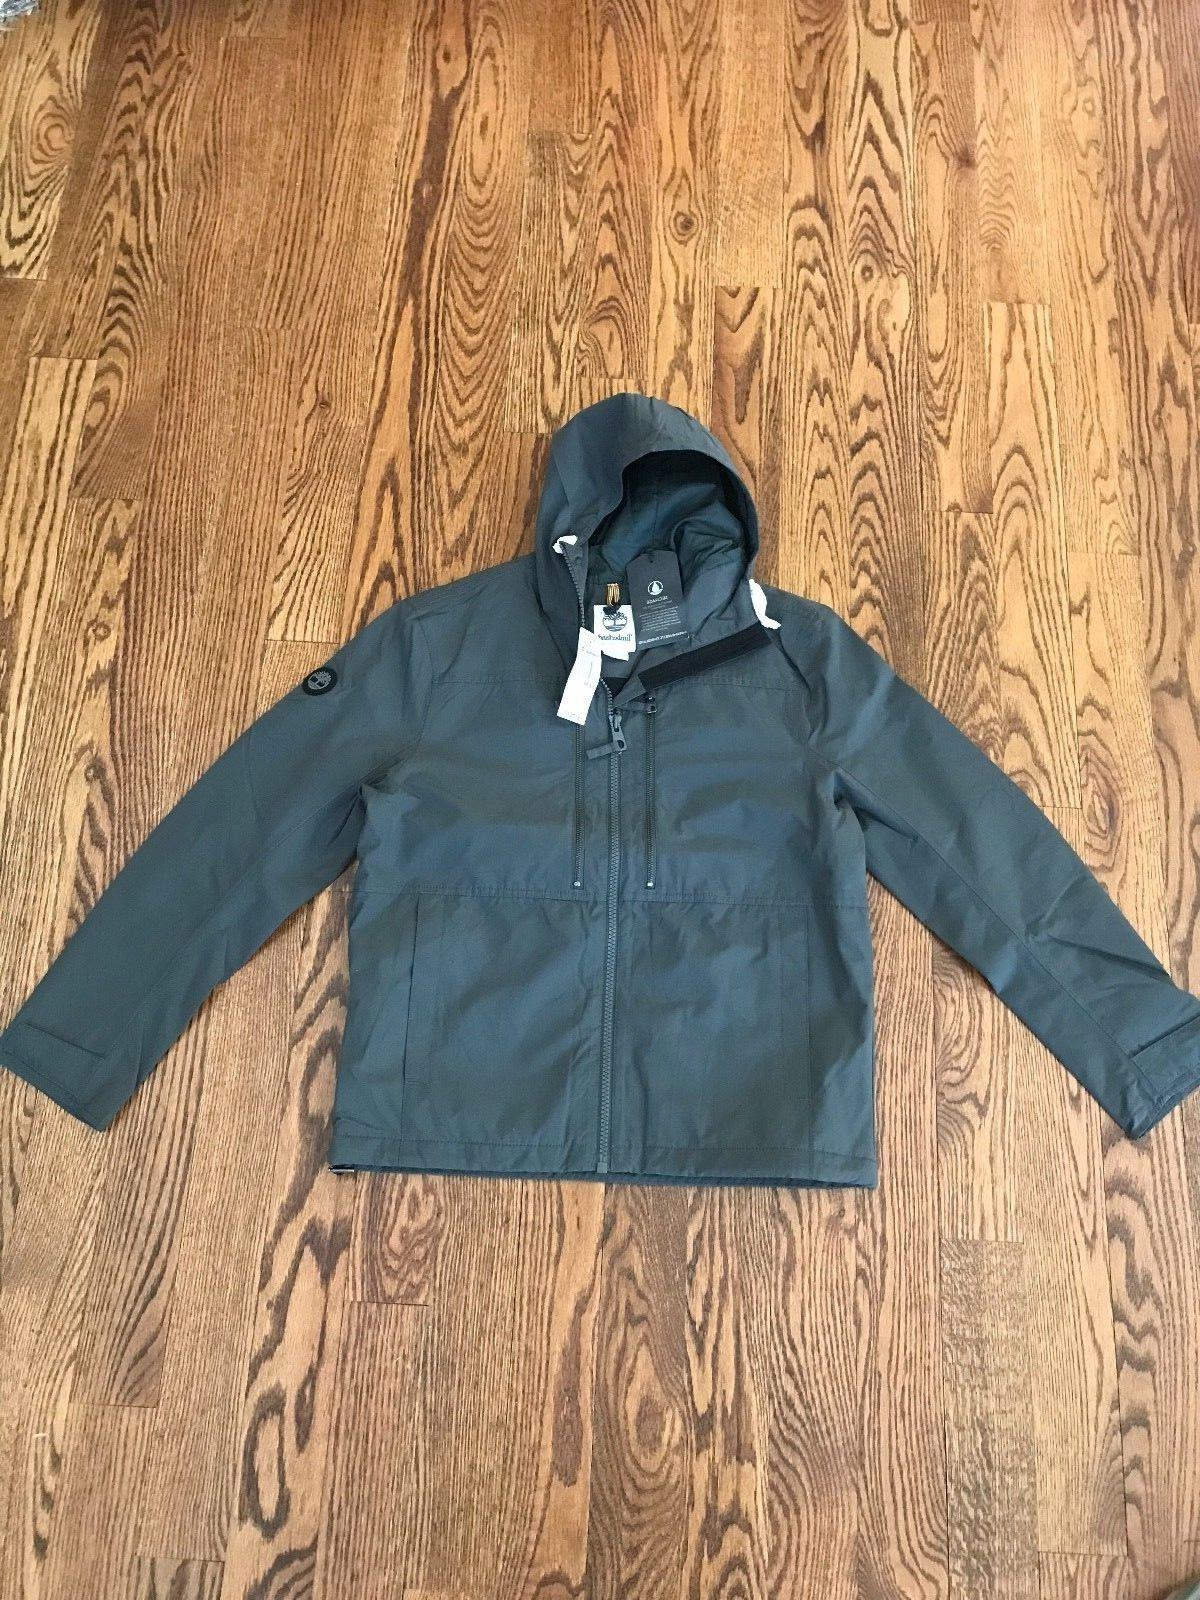 Timberland Men's Ludlow Mountain Waterproof Hiker Jacket NWT